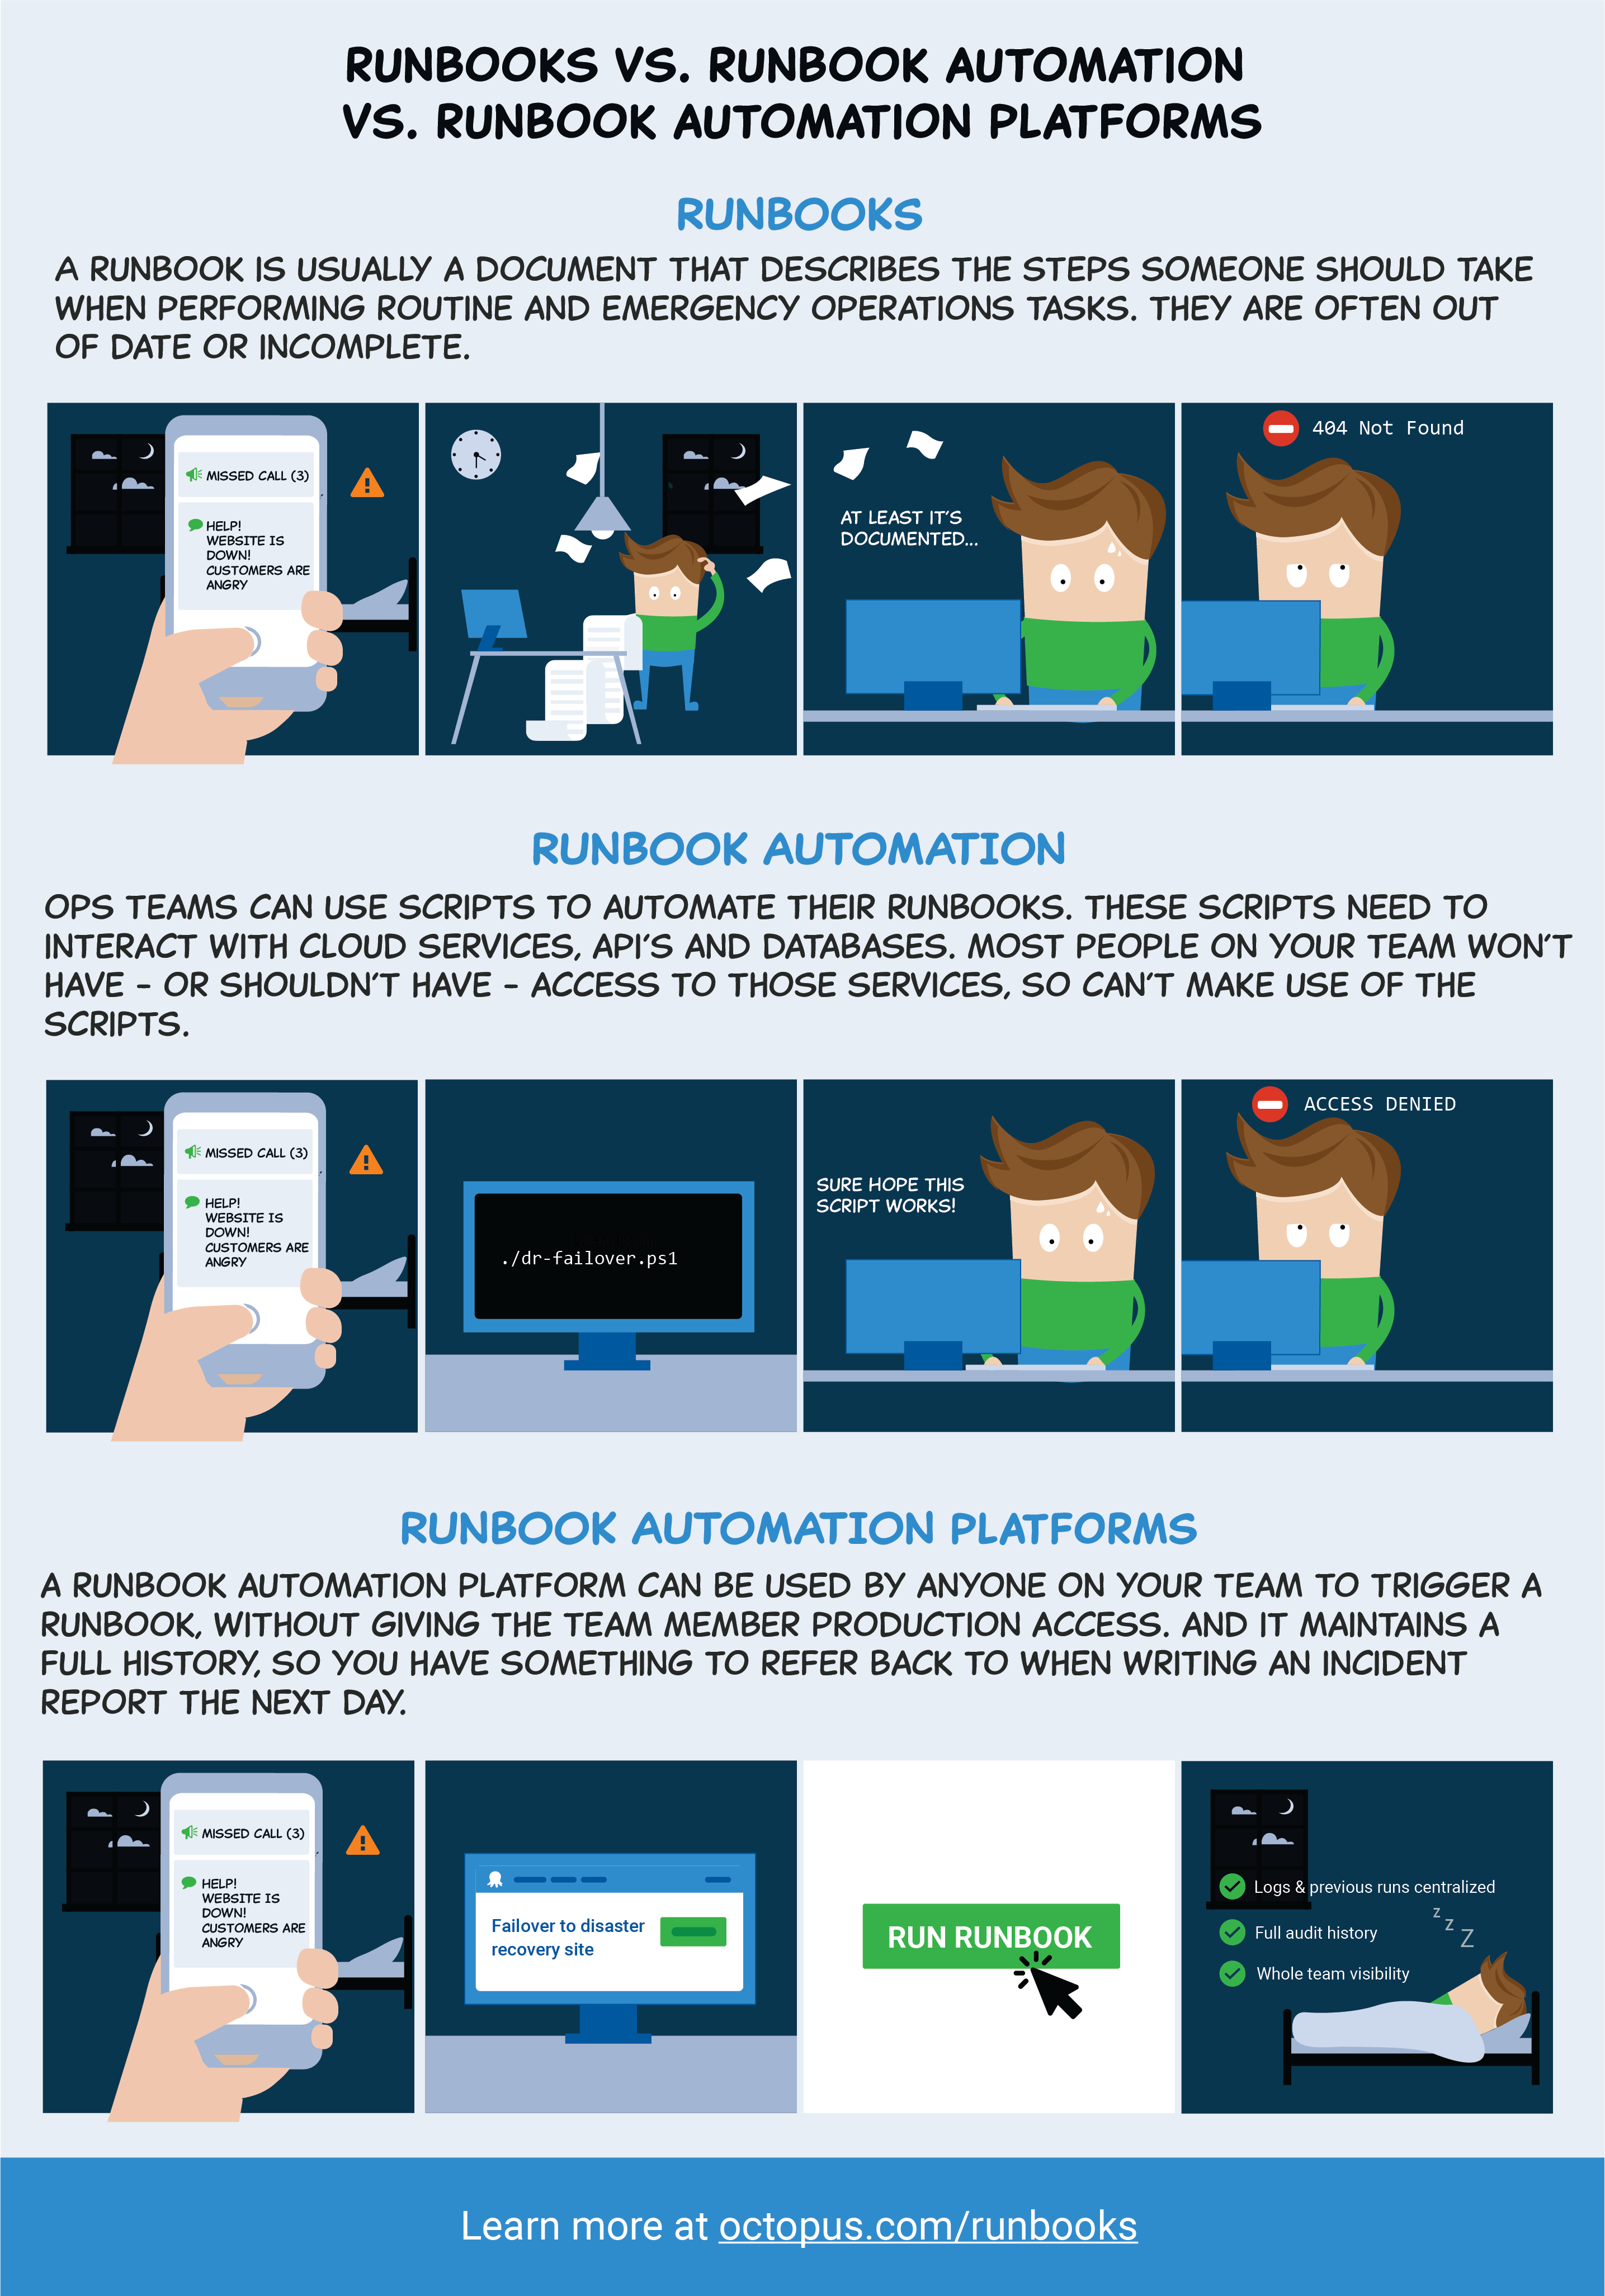 Runbooks, runbook automation, and runbook automation platforms